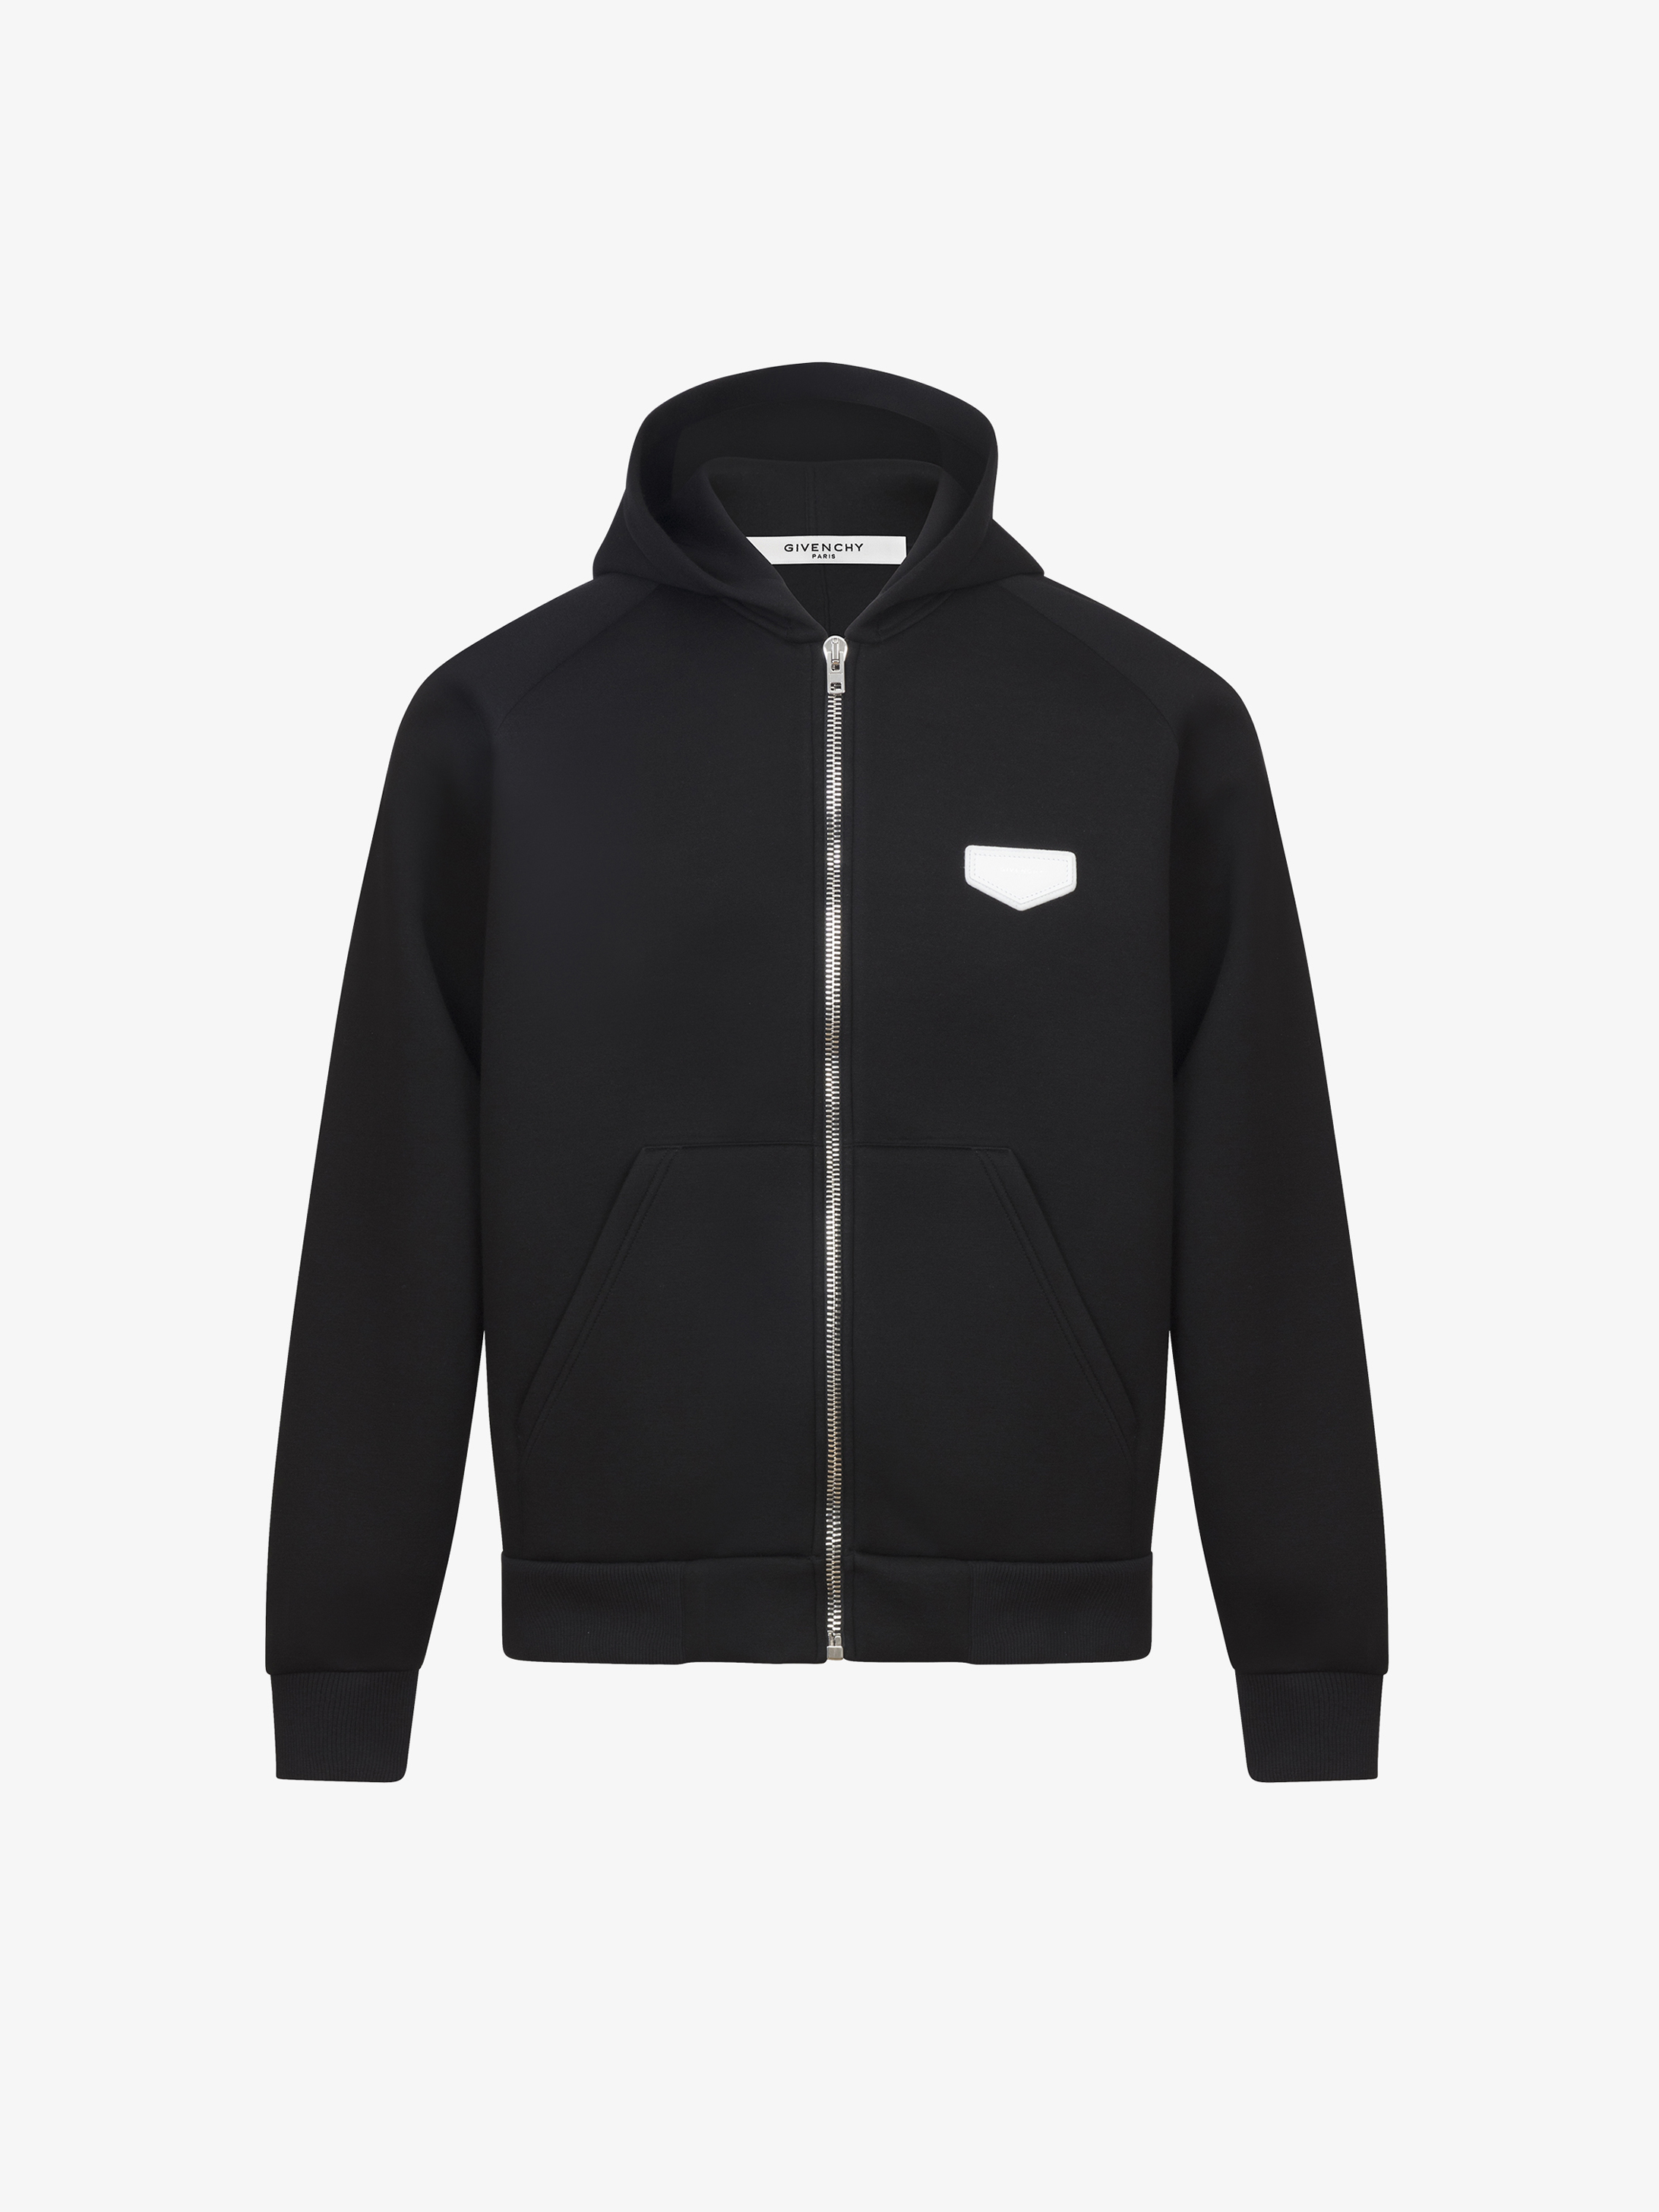 GIVENCHY patch hoodie in neoprene